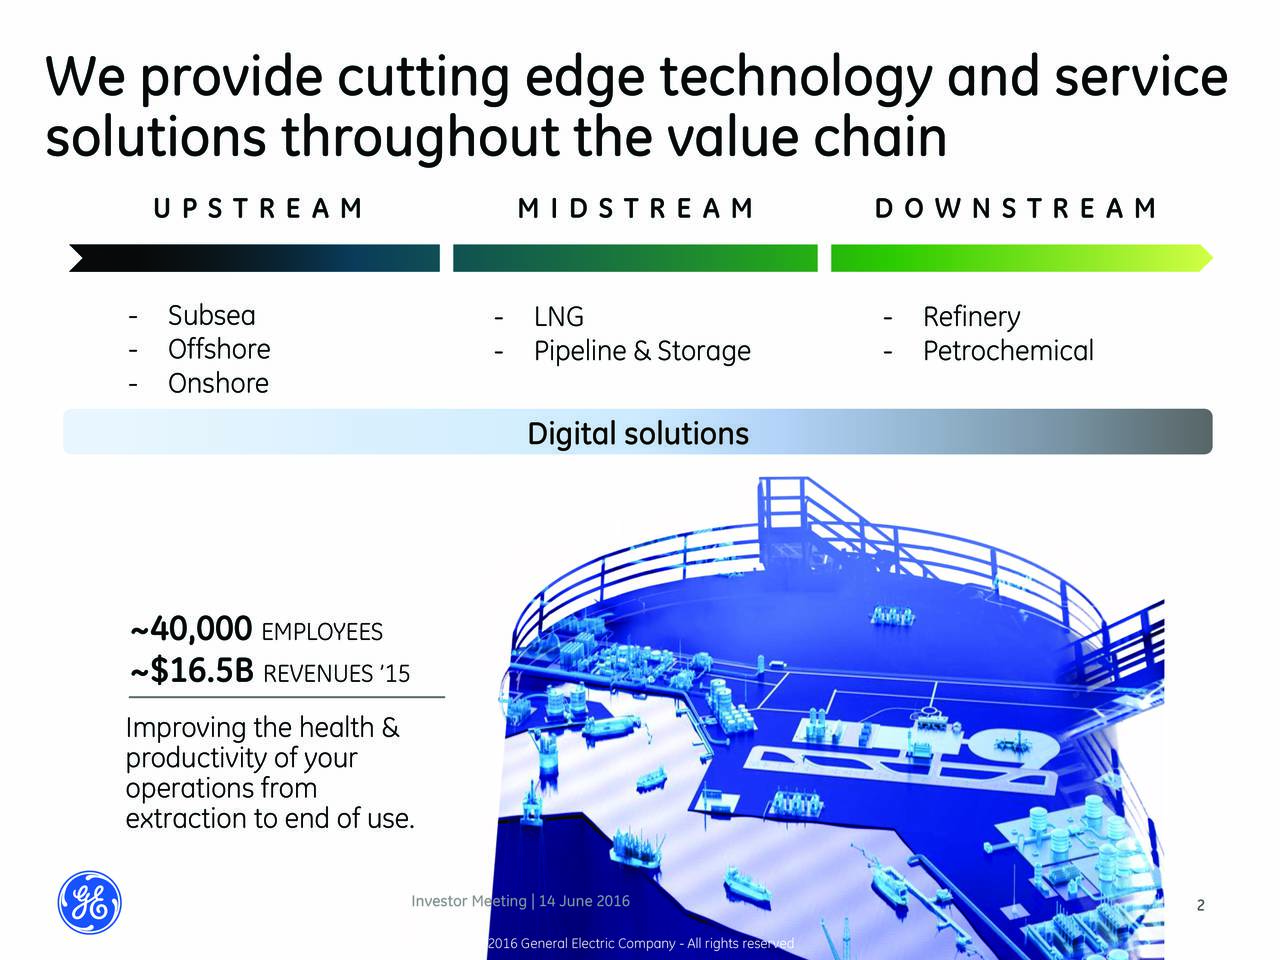 solutions throughout the value chain UPSTREAM MIDSTREAM DOWNSTREAM - Subsea - LNG - Refinery - Offshore - Pipeline & Storage - Petrochemical - Onshore Digital solutions ~40,000 EMPLOYEES ~$16.5B REVENUES 15 Improving the health & productivity of your operations from extraction to end of use. Investor Meeting | 14 June 201616 General Electric Company2- All rights reserved